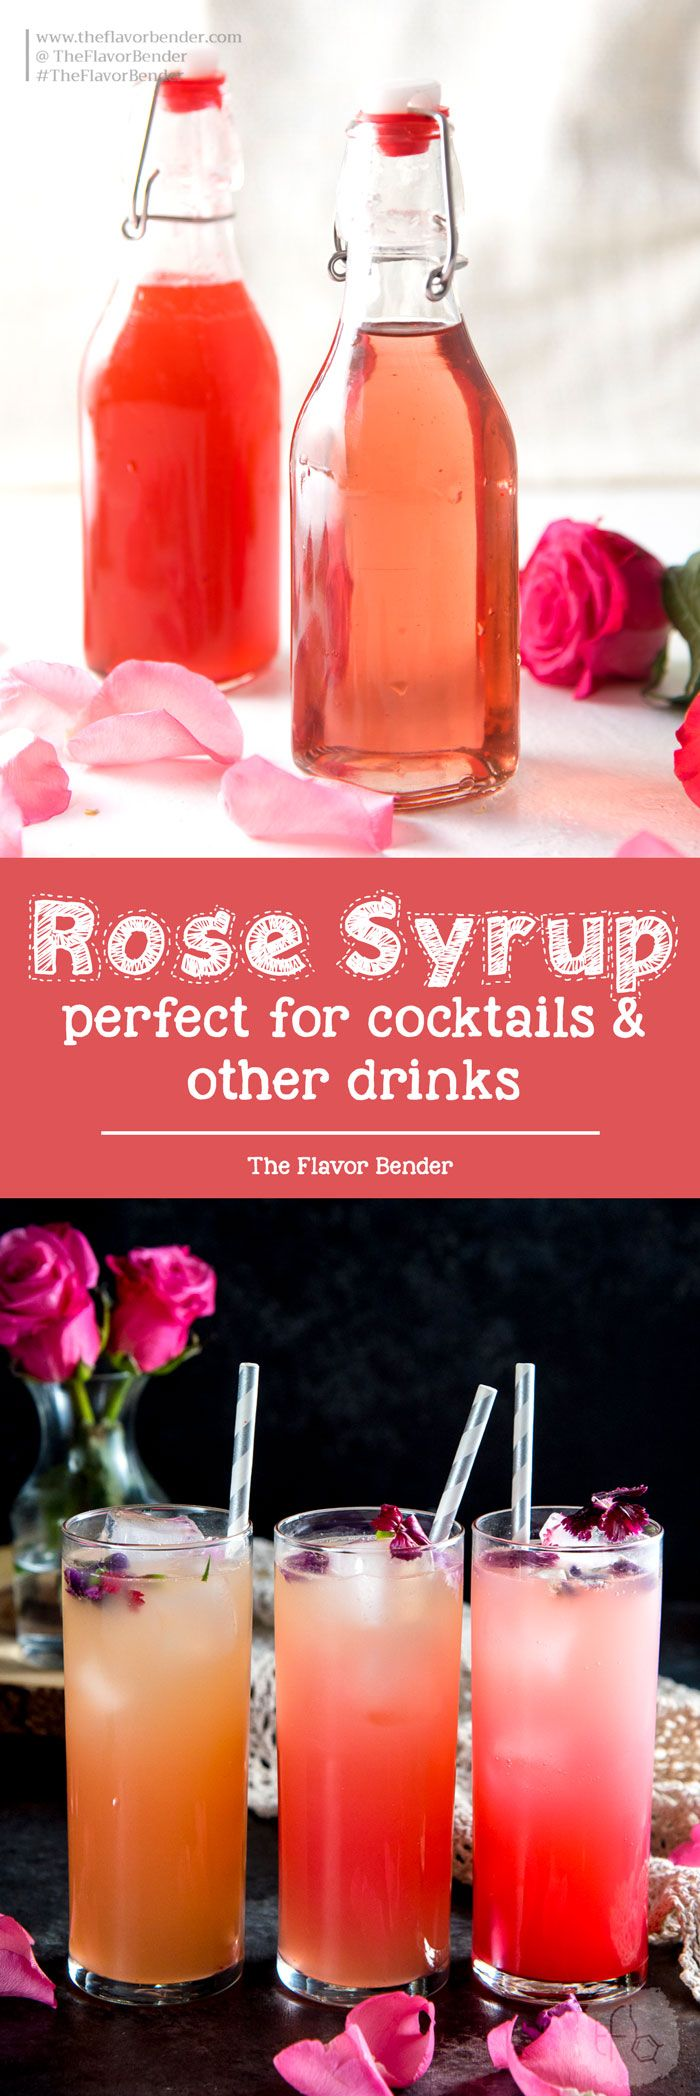 Rose Syrup (and Vanilla Rose syrup) -  made with rose water for cocktails and other drinks, like Falooda (Rose syrup milk shake) and other desserts too. #Rosewater #Floralcocktails #Rosesyrup #Falooda #FloralDrinks via @theflavorbender